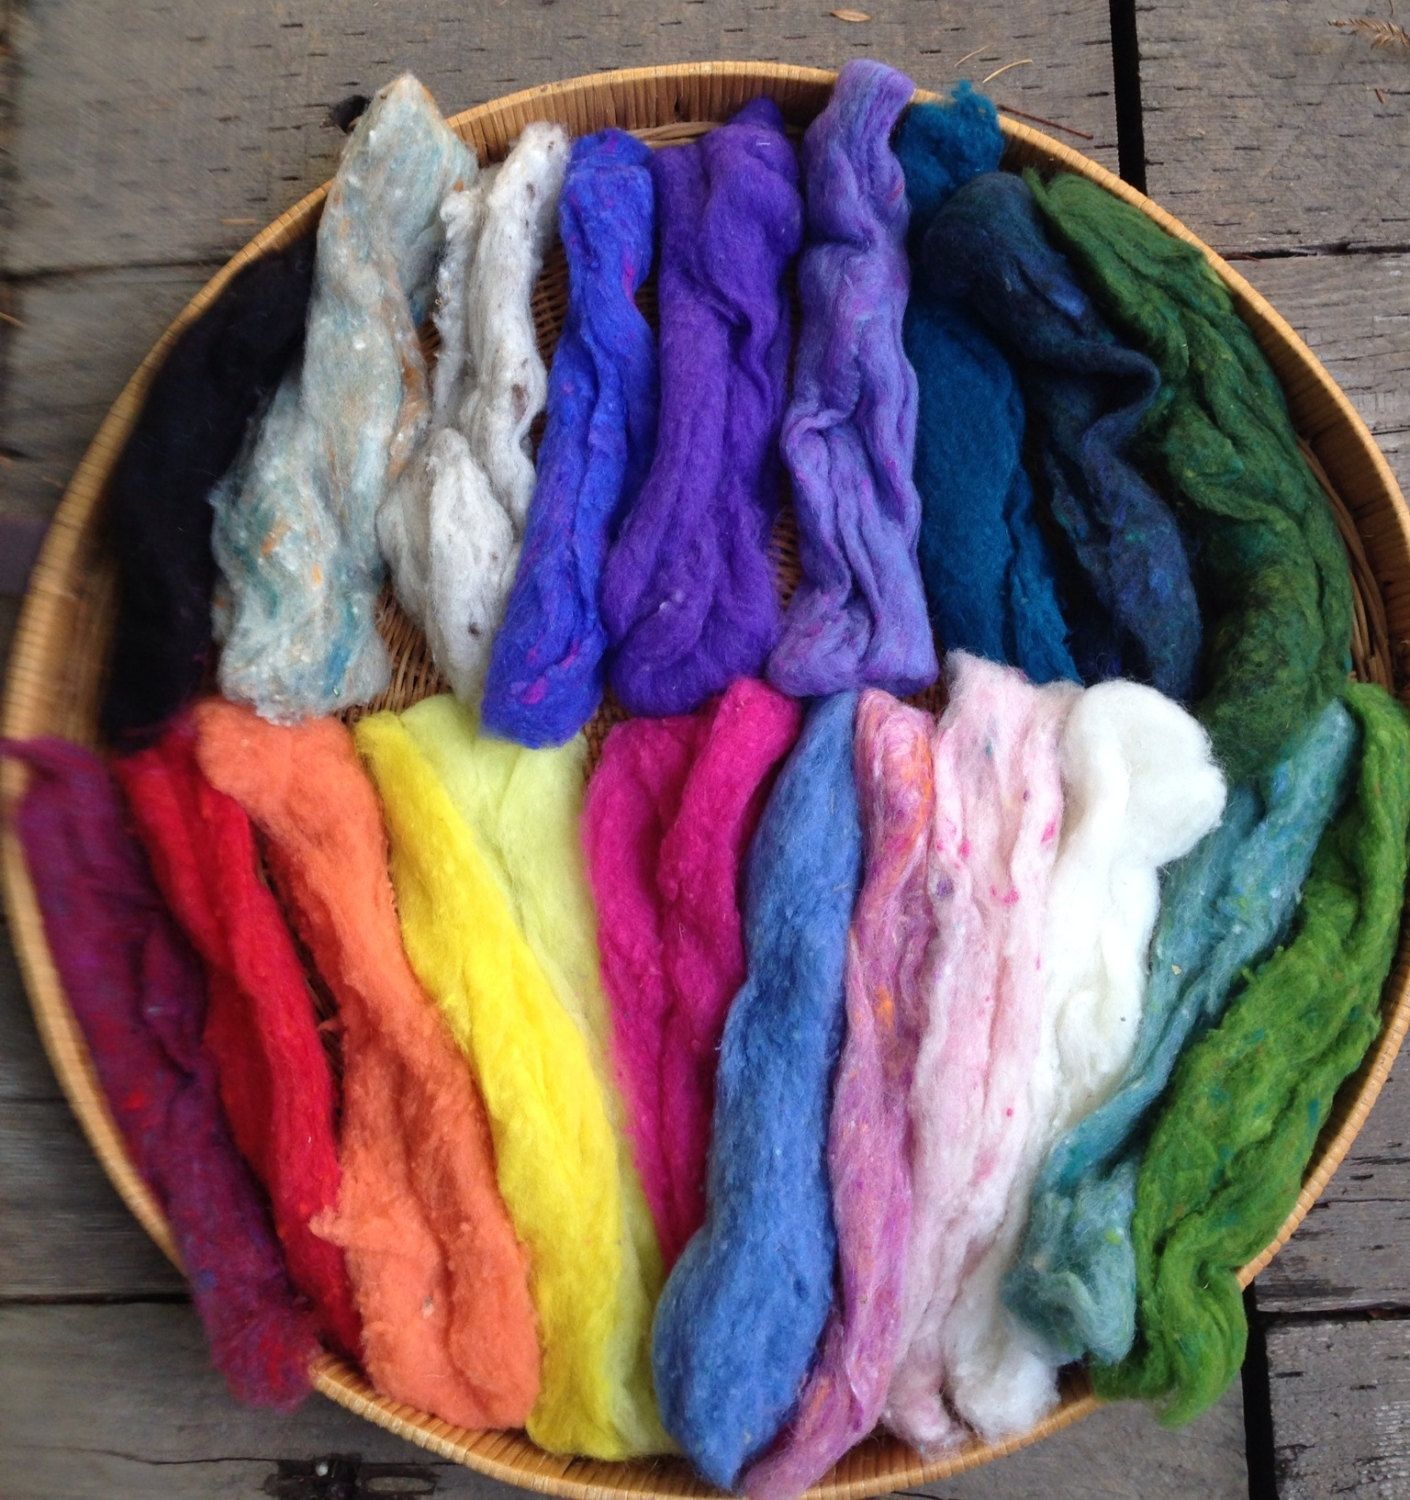 For sale rainbow wool fleece set for weft insertion in